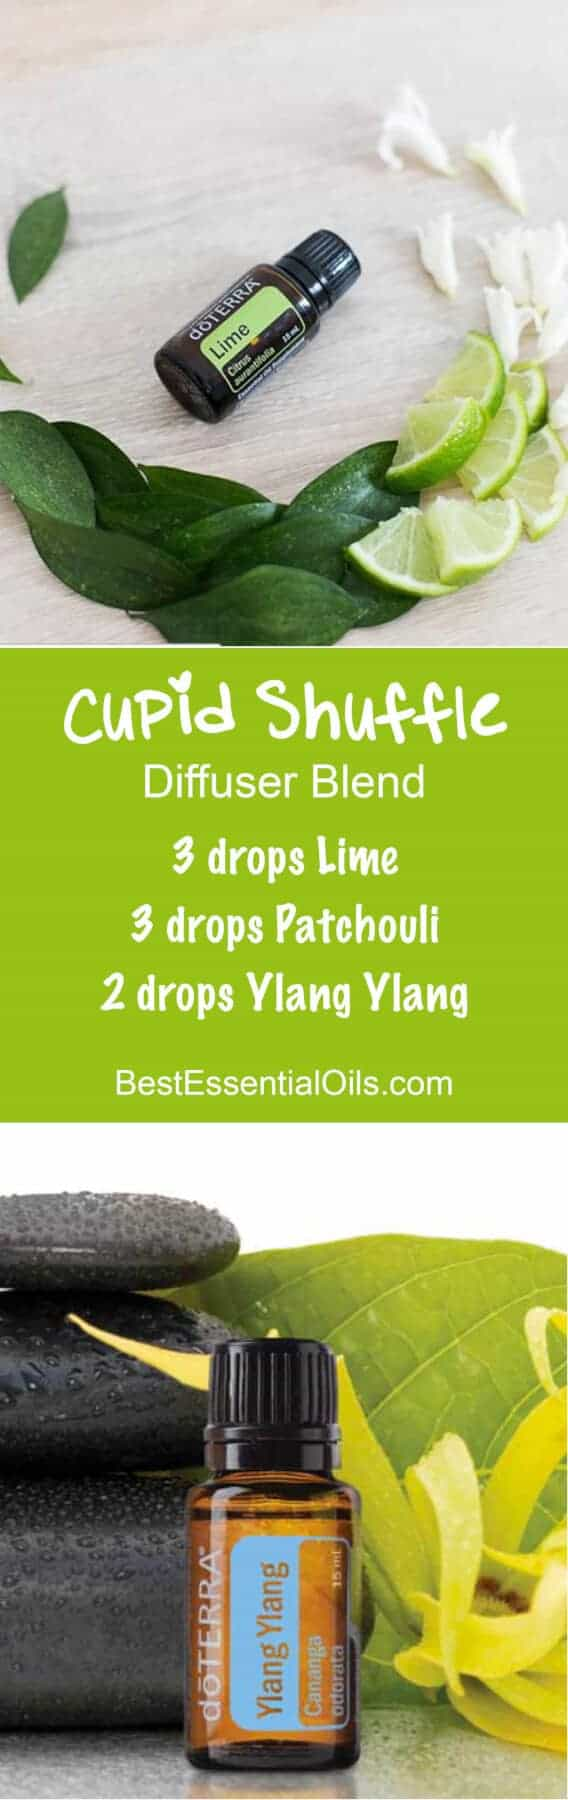 doTERRA Essential Oils Cupid Shuffle Diffuser Blend